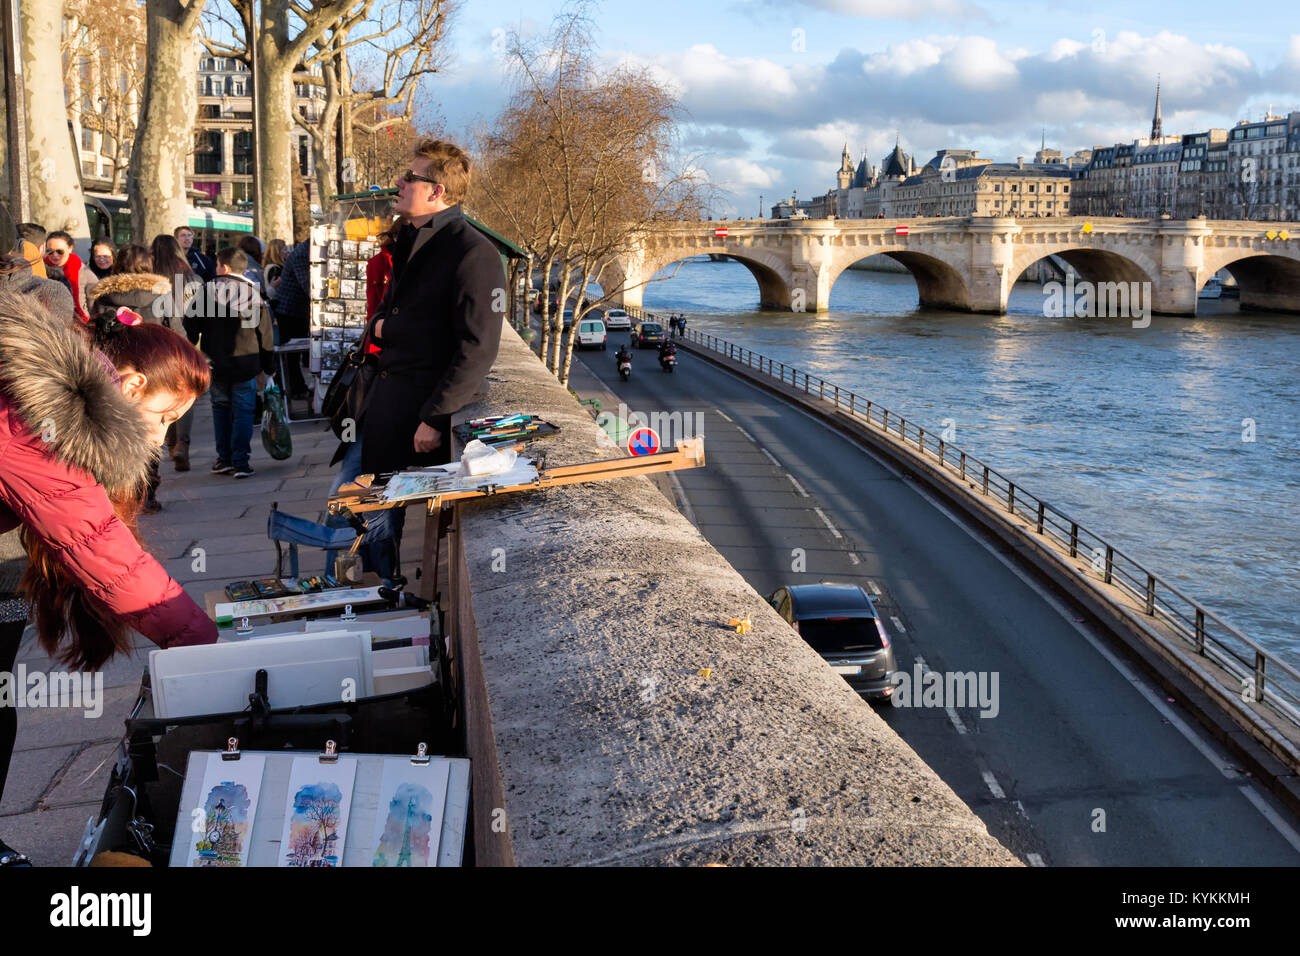 PARIS - Jan 2, 2014: Art and book sellers on a busy street with a view of the Seine River below. A shopper looks - Stock Image